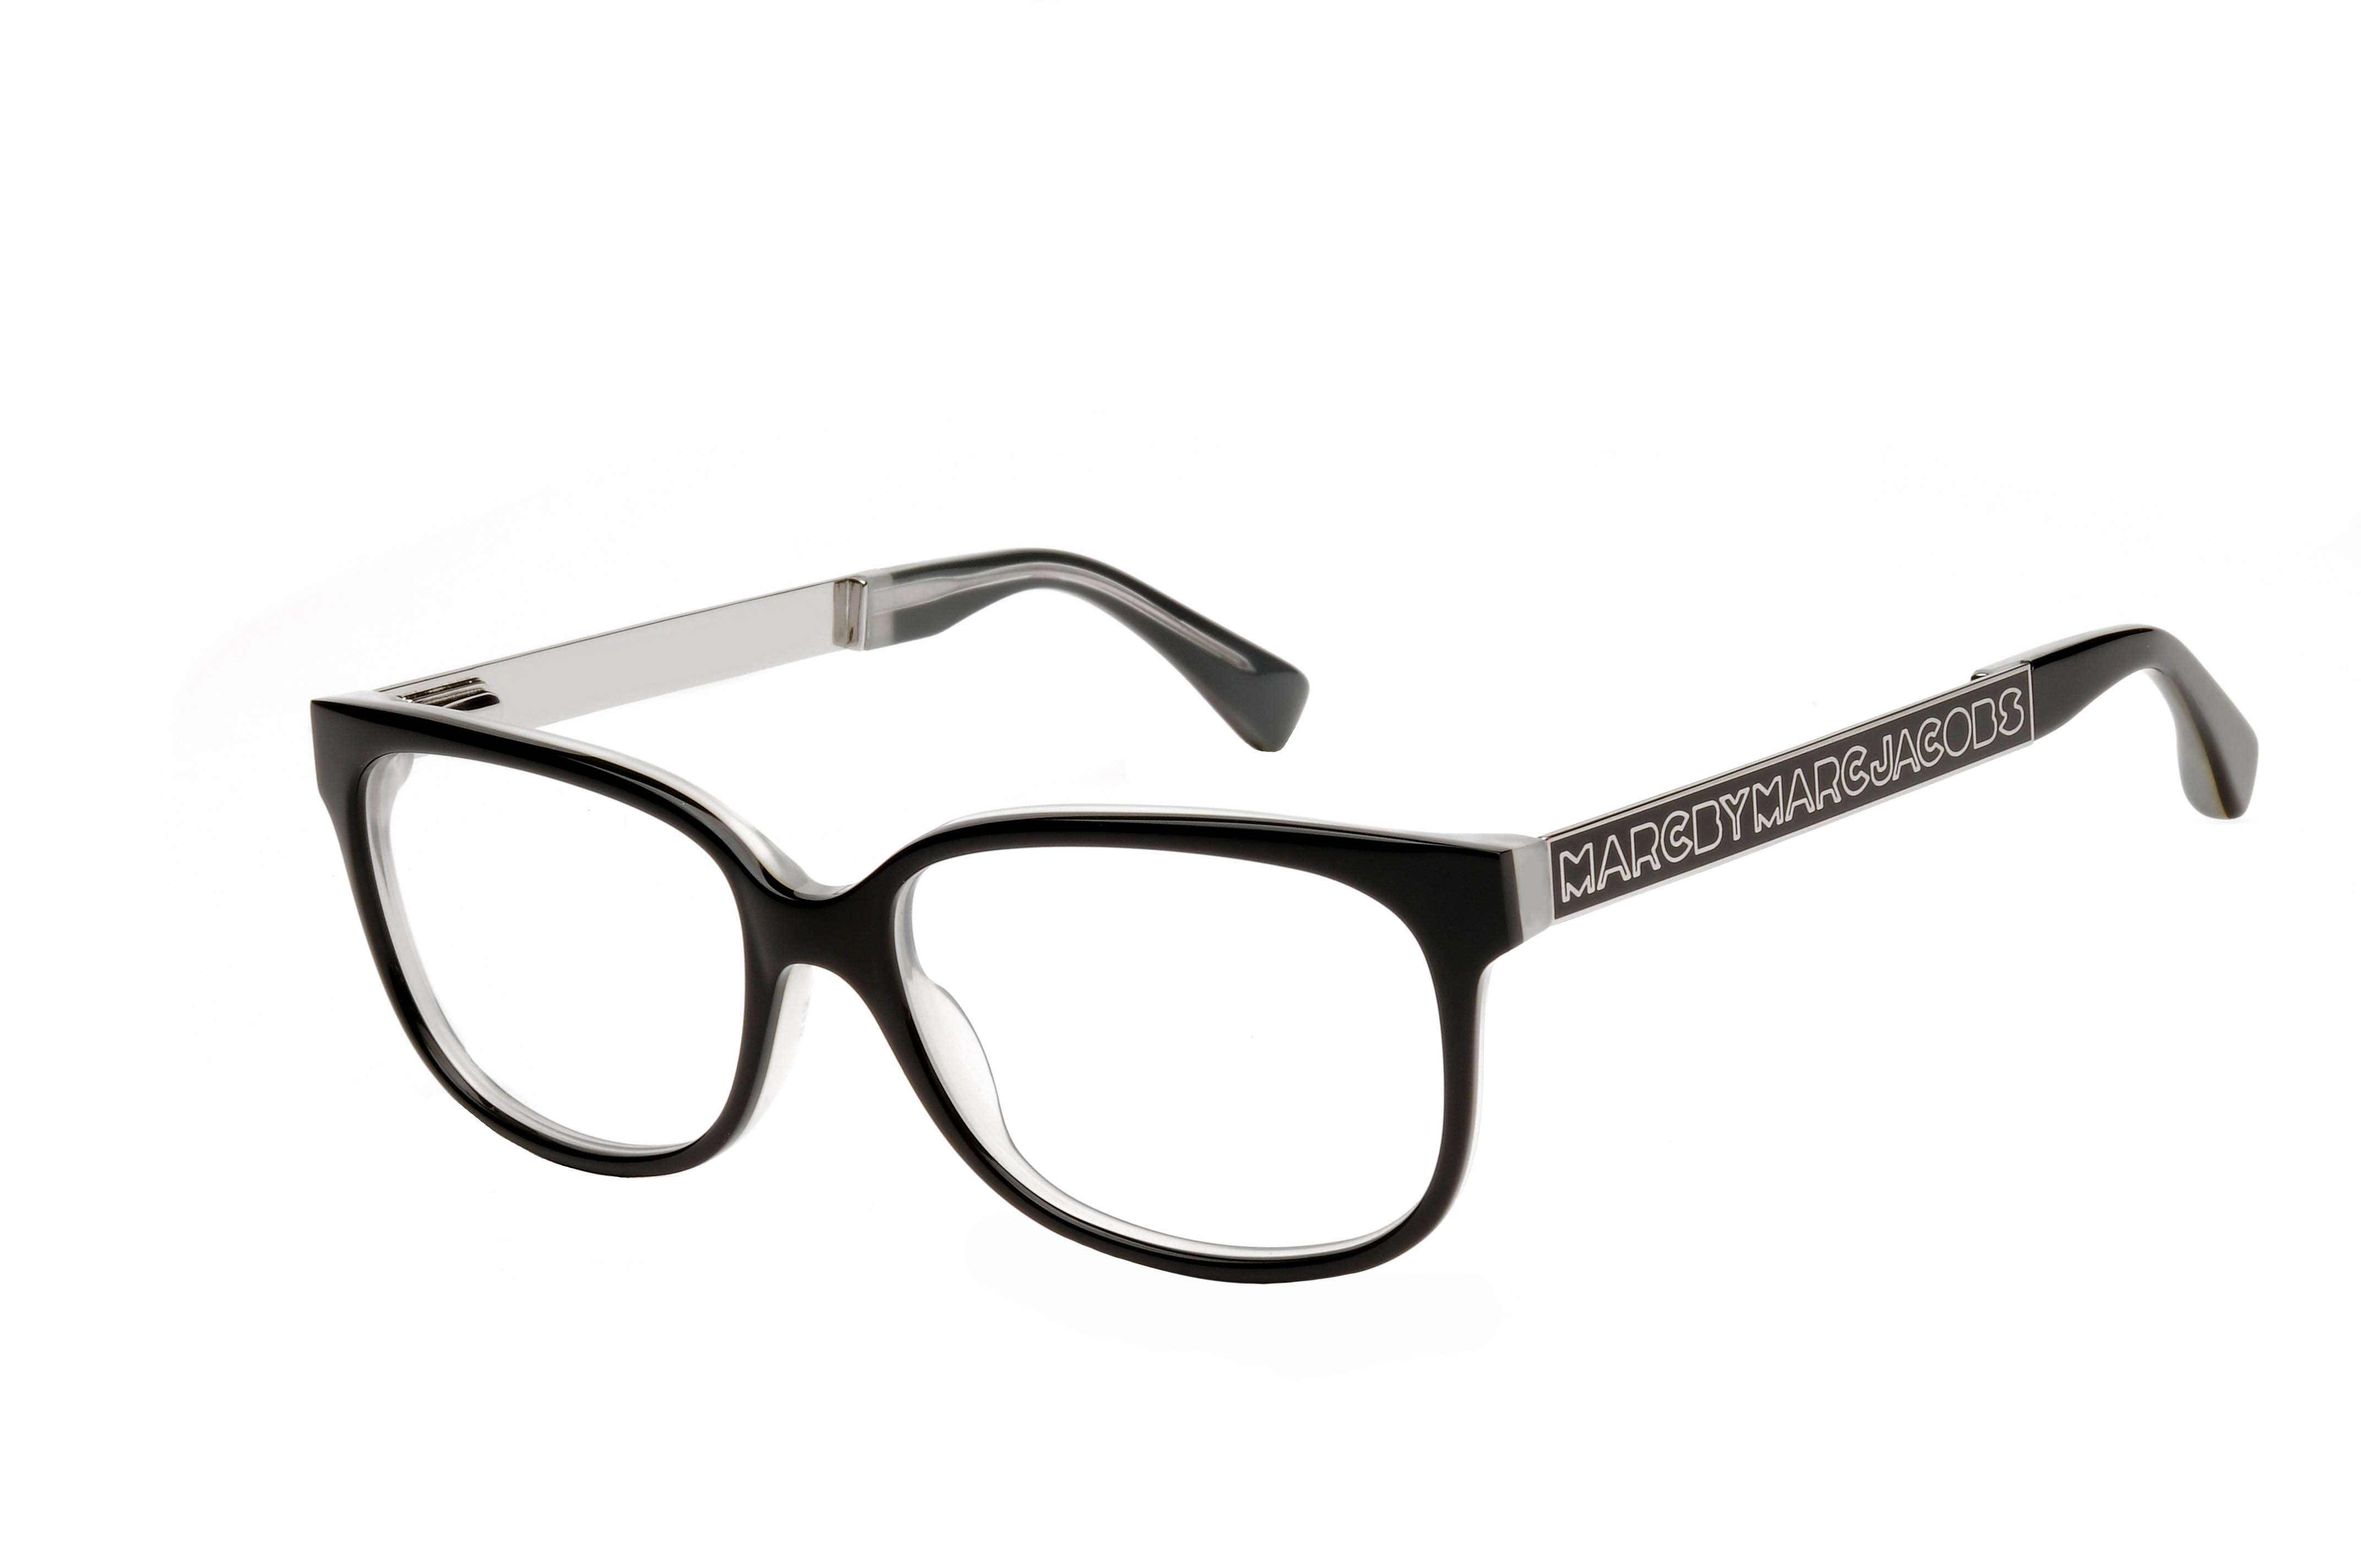 Marc by Marc Jacobs (MMJ462) by Safilo